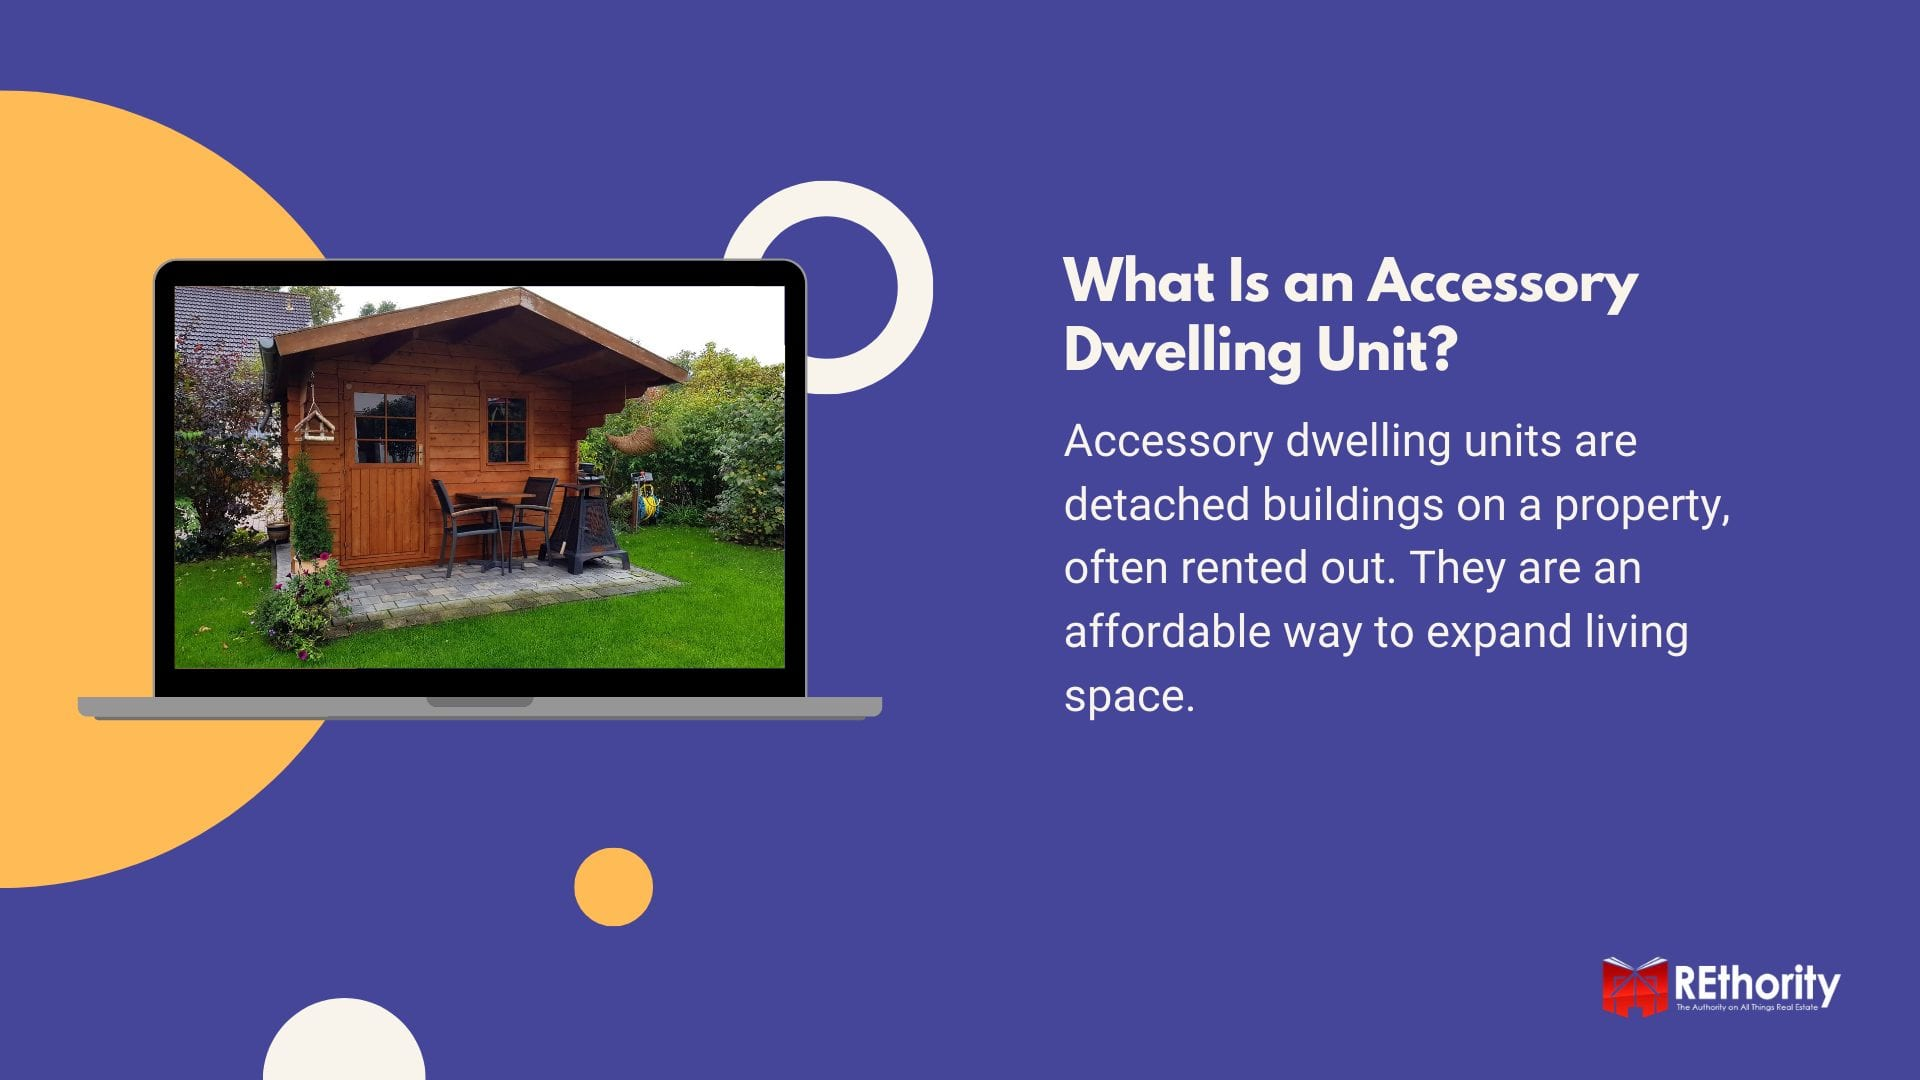 What is an accessory dwelling unit graphic featuring one displayed on a laptop screen and a definition of the term